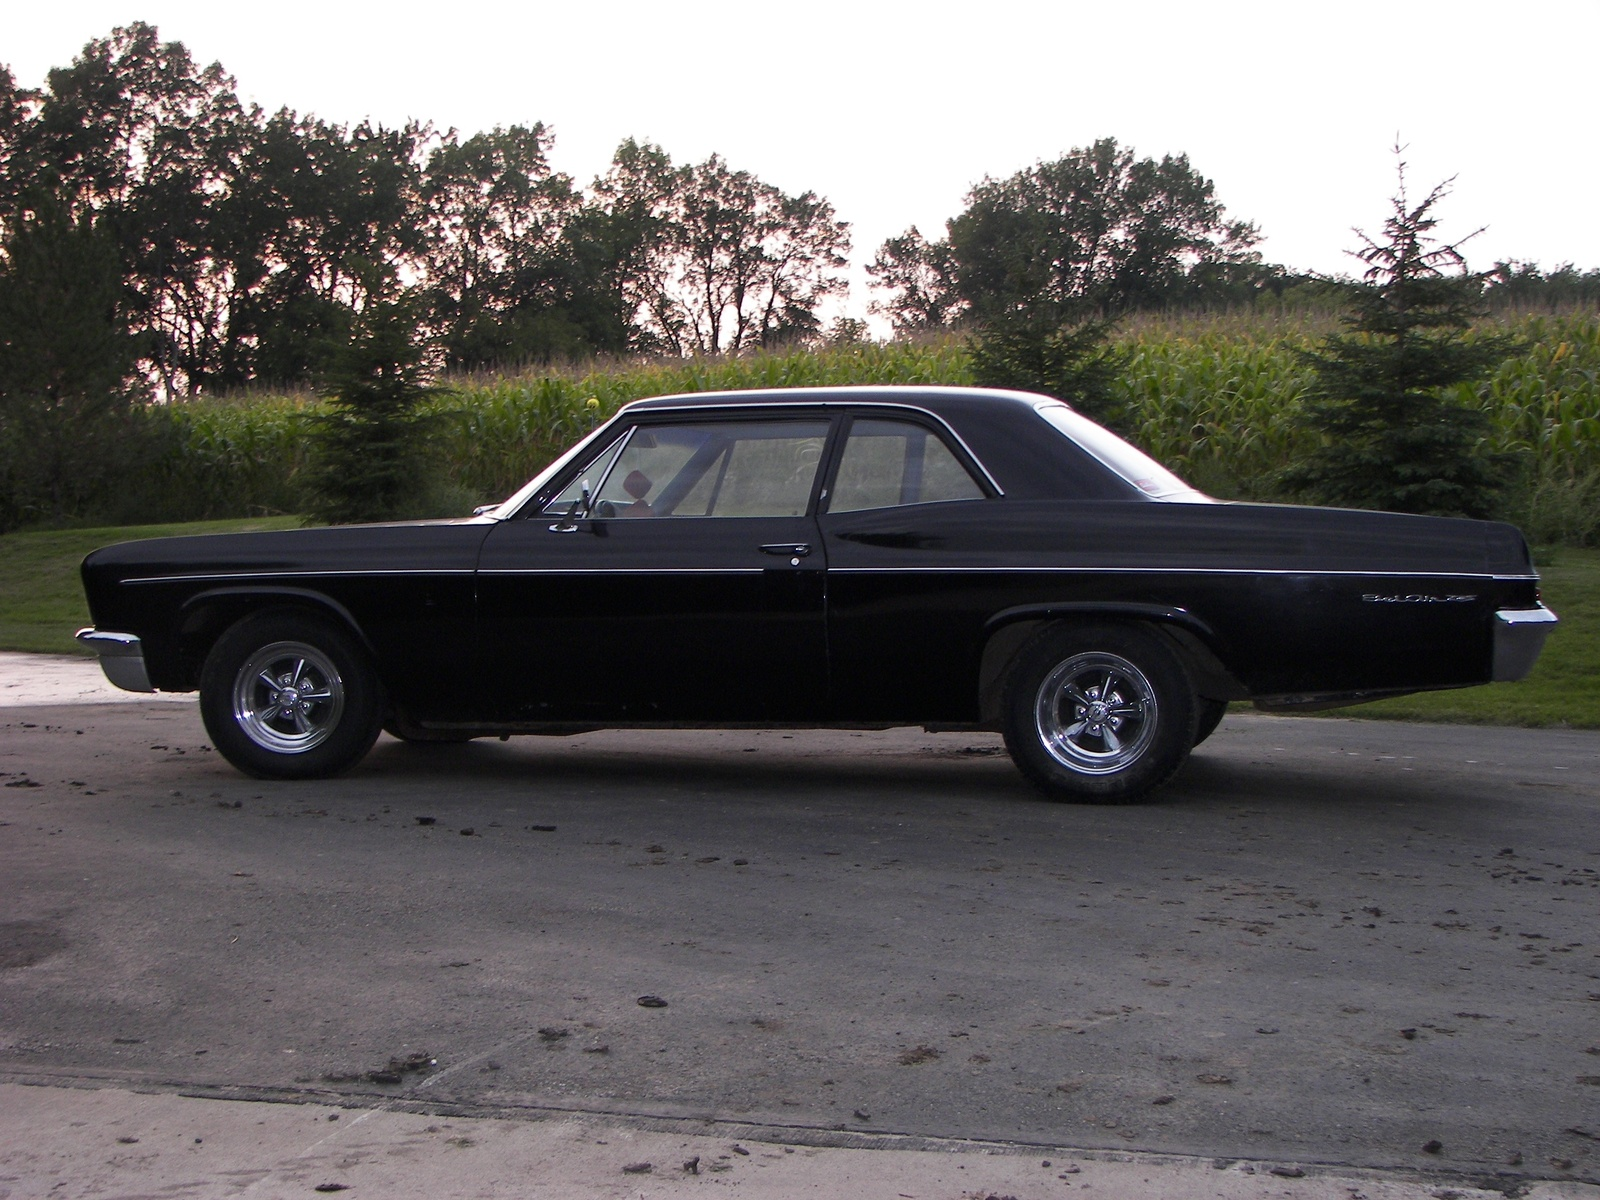 Click image for larger version  Name:1966_chevrolet_bel_air-pic-16353.jpg Views:70 Size:654.1 KB ID:72976